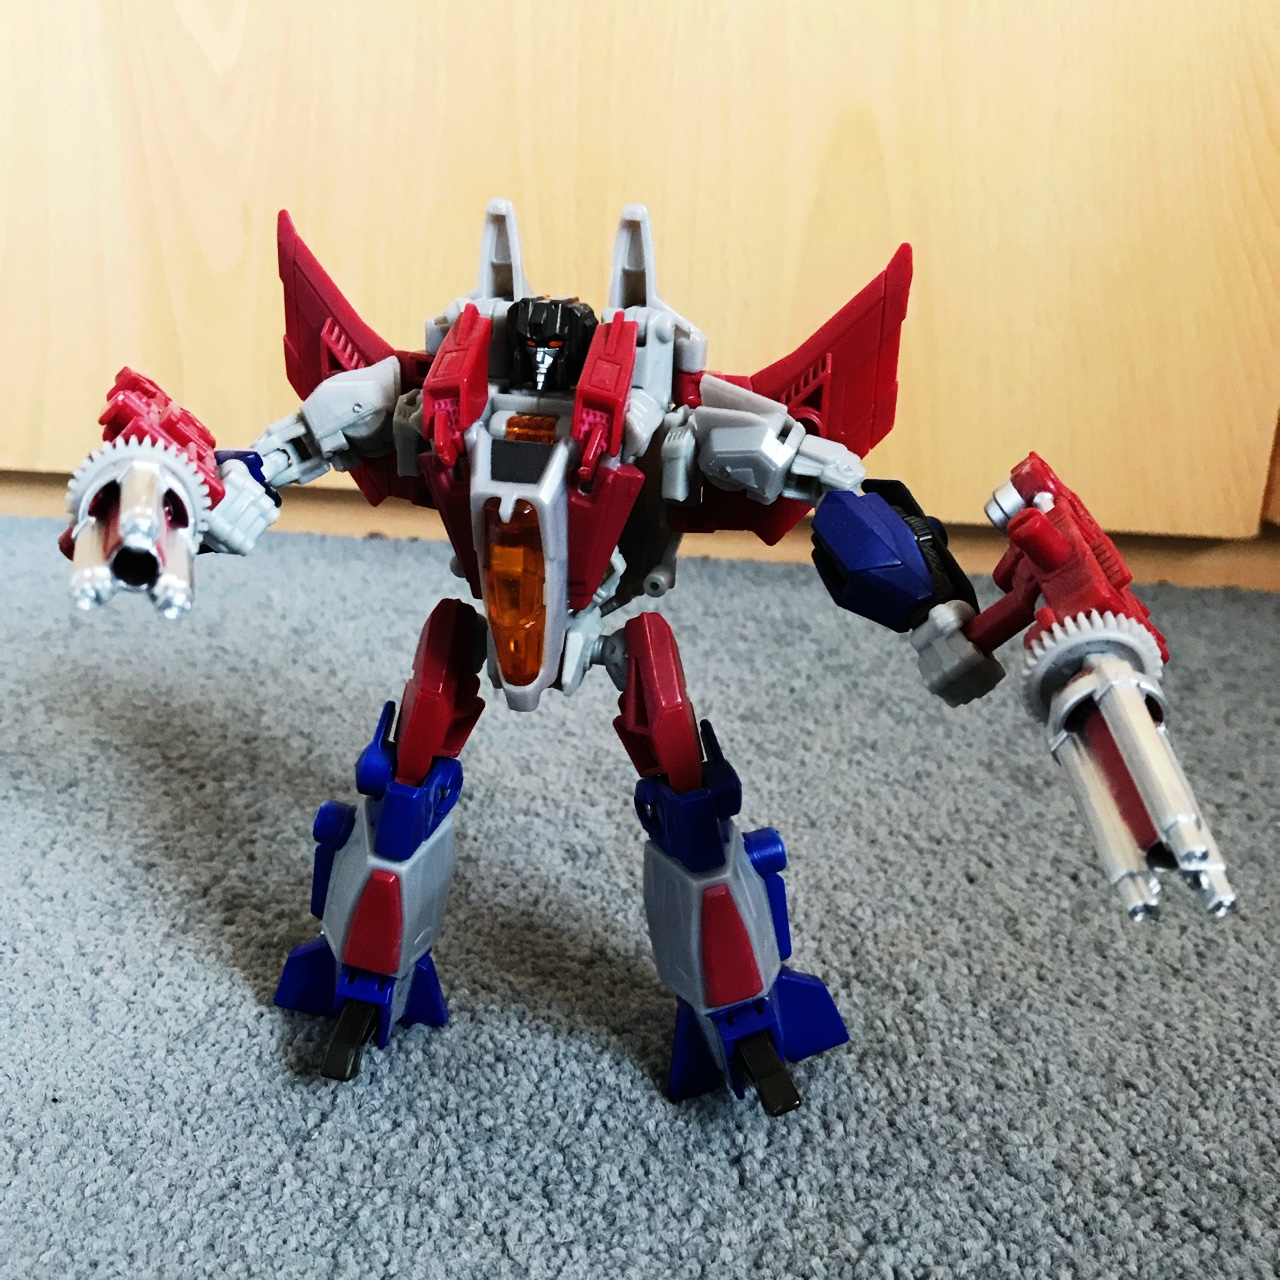 Transformers Generations Fall of Cybertron    - Depop